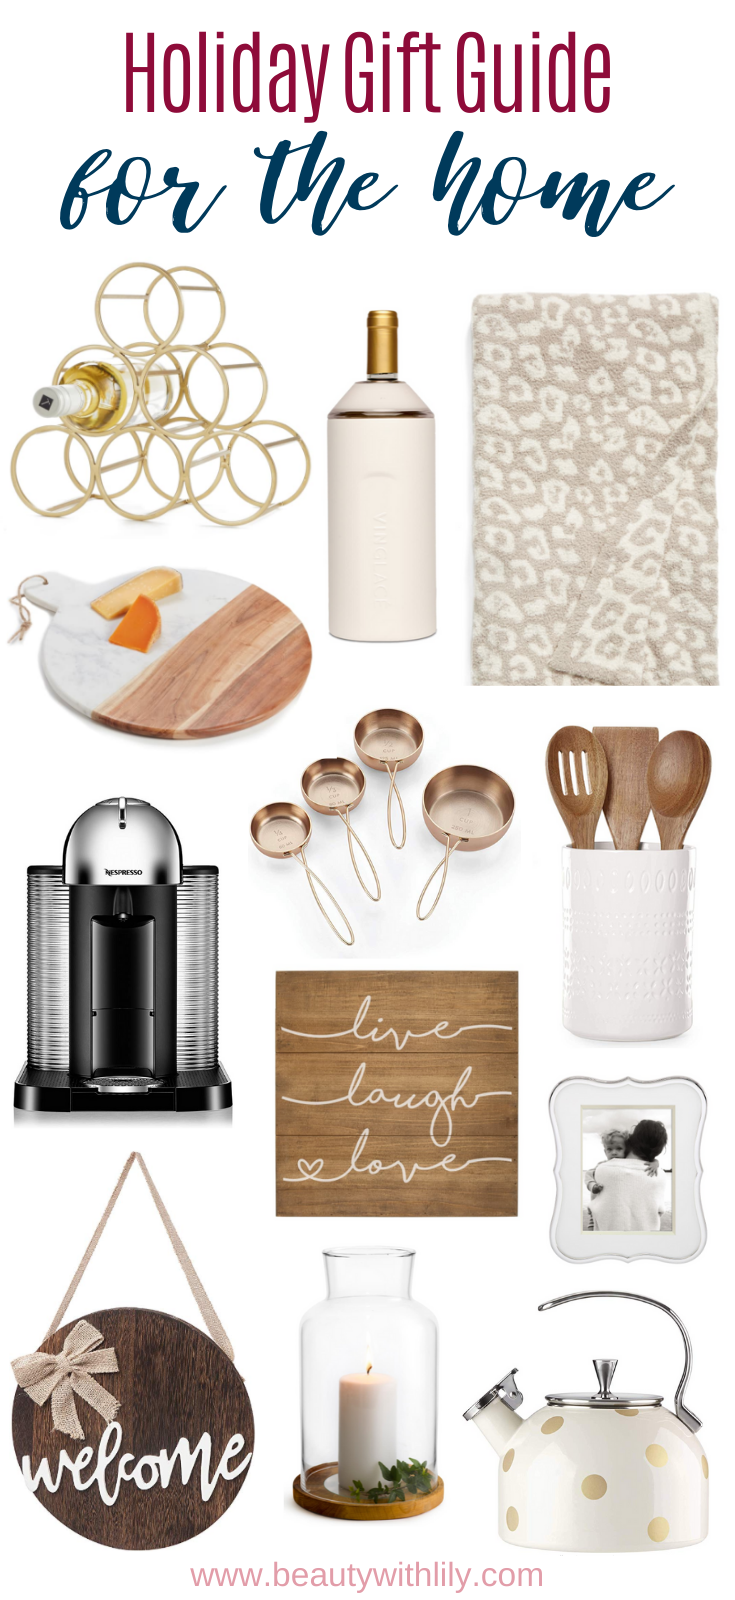 Gift Guide for the Home // Home Decor Inspiration // Gift Ideas for Home Decor Lovers // Christmas Gift Ideas // Christmas Gift Guide | Beauty With Lily